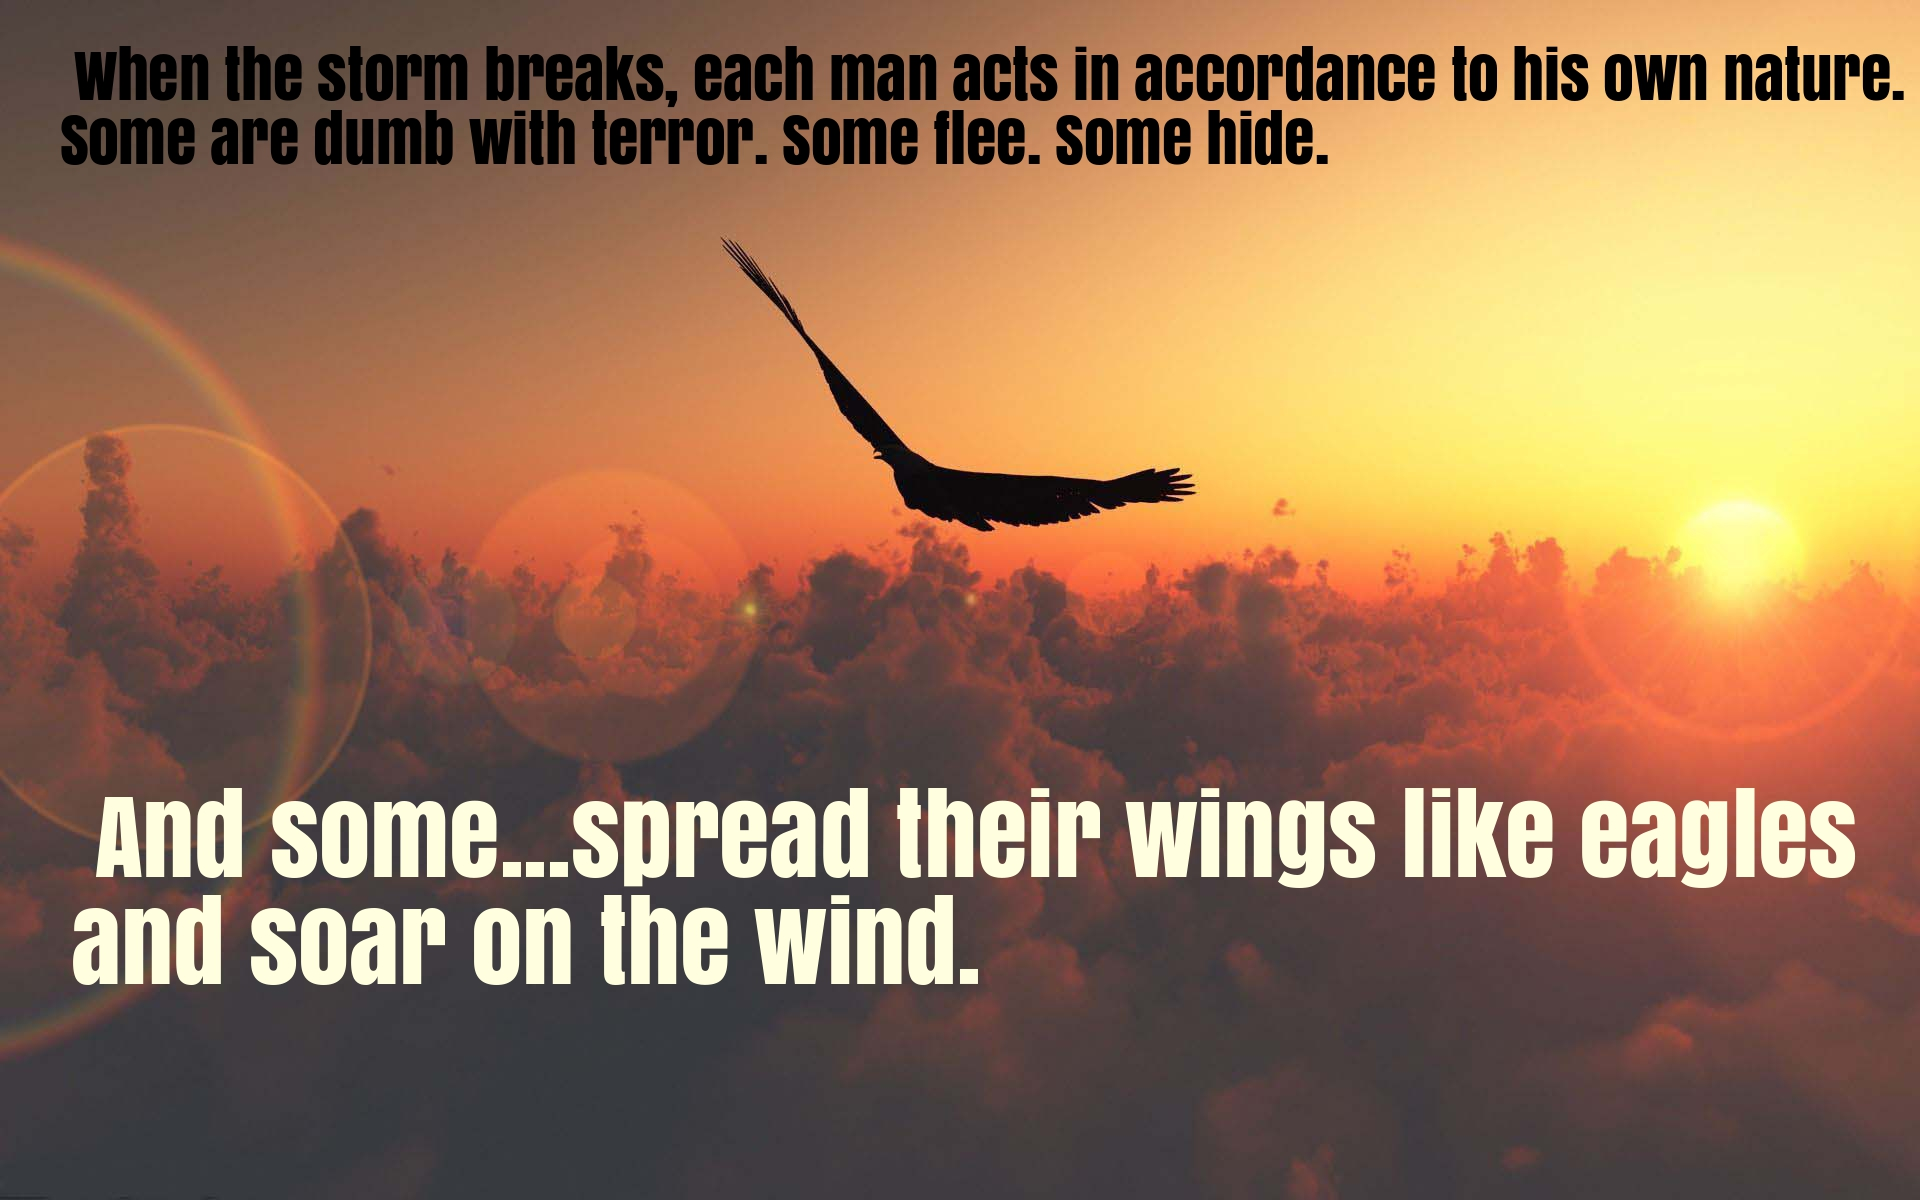 [Image] Spread your wings like eagles